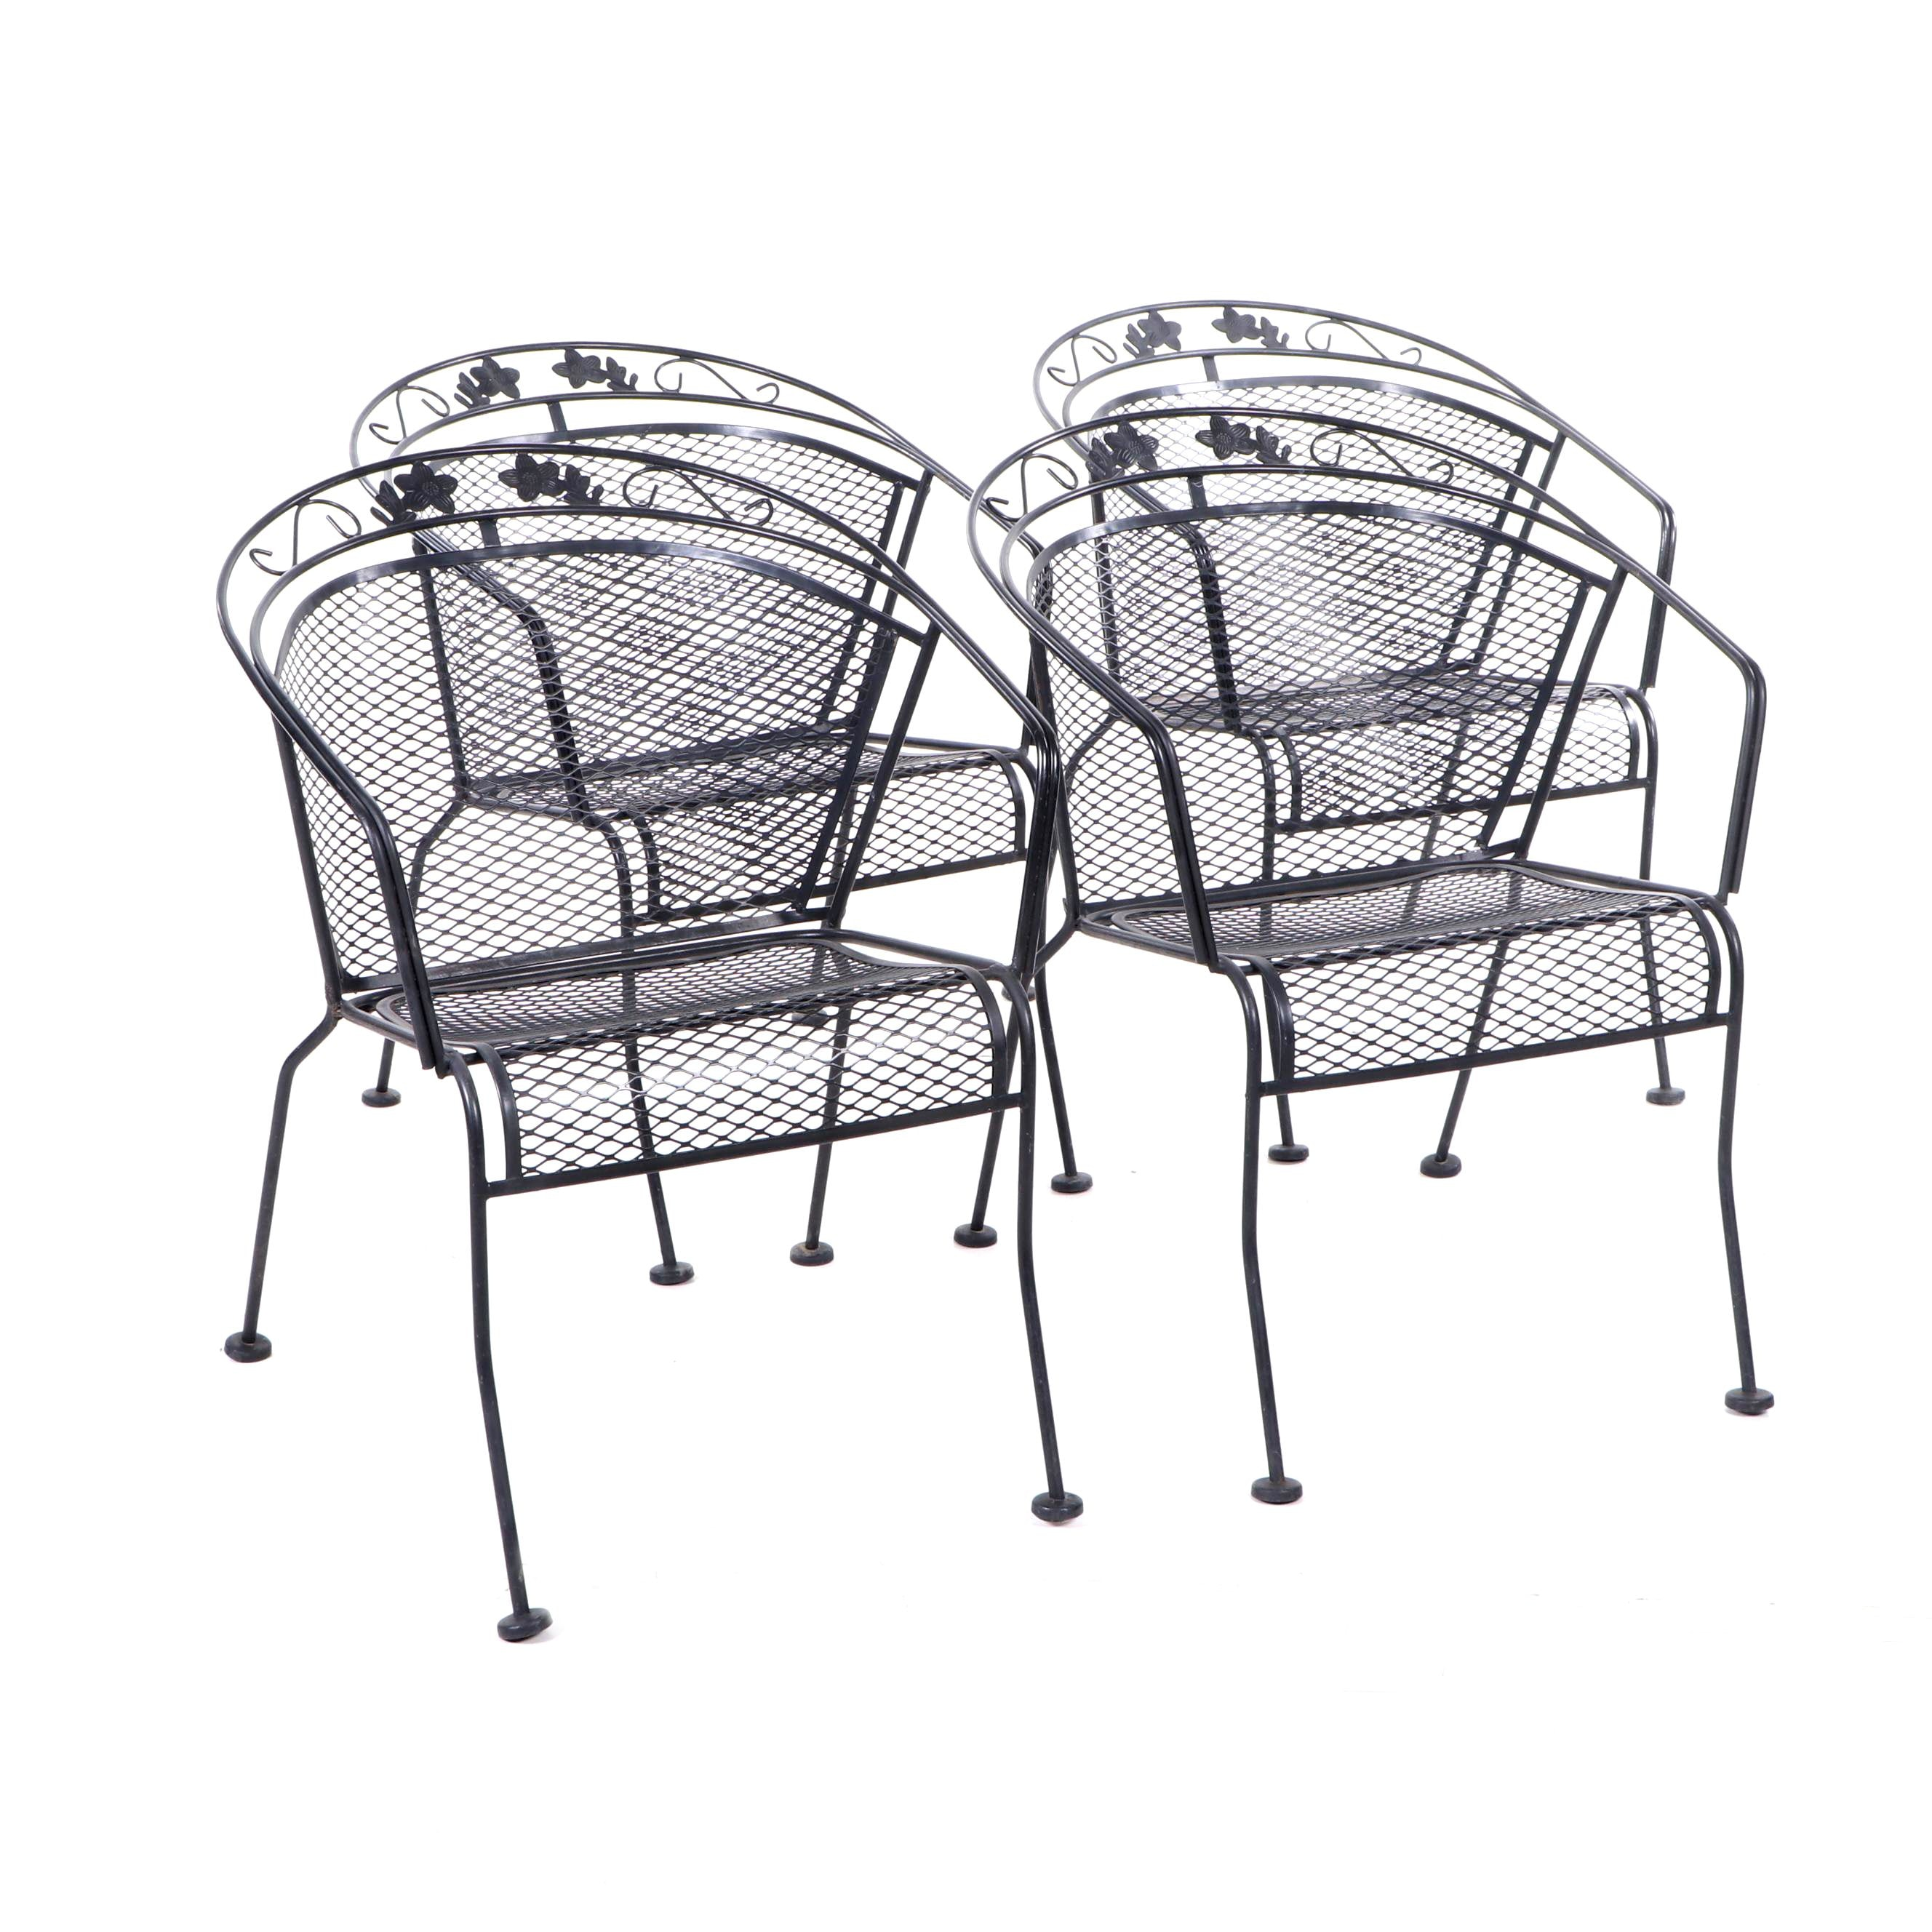 Black Cast Metal Patio Chairs, Contemporary